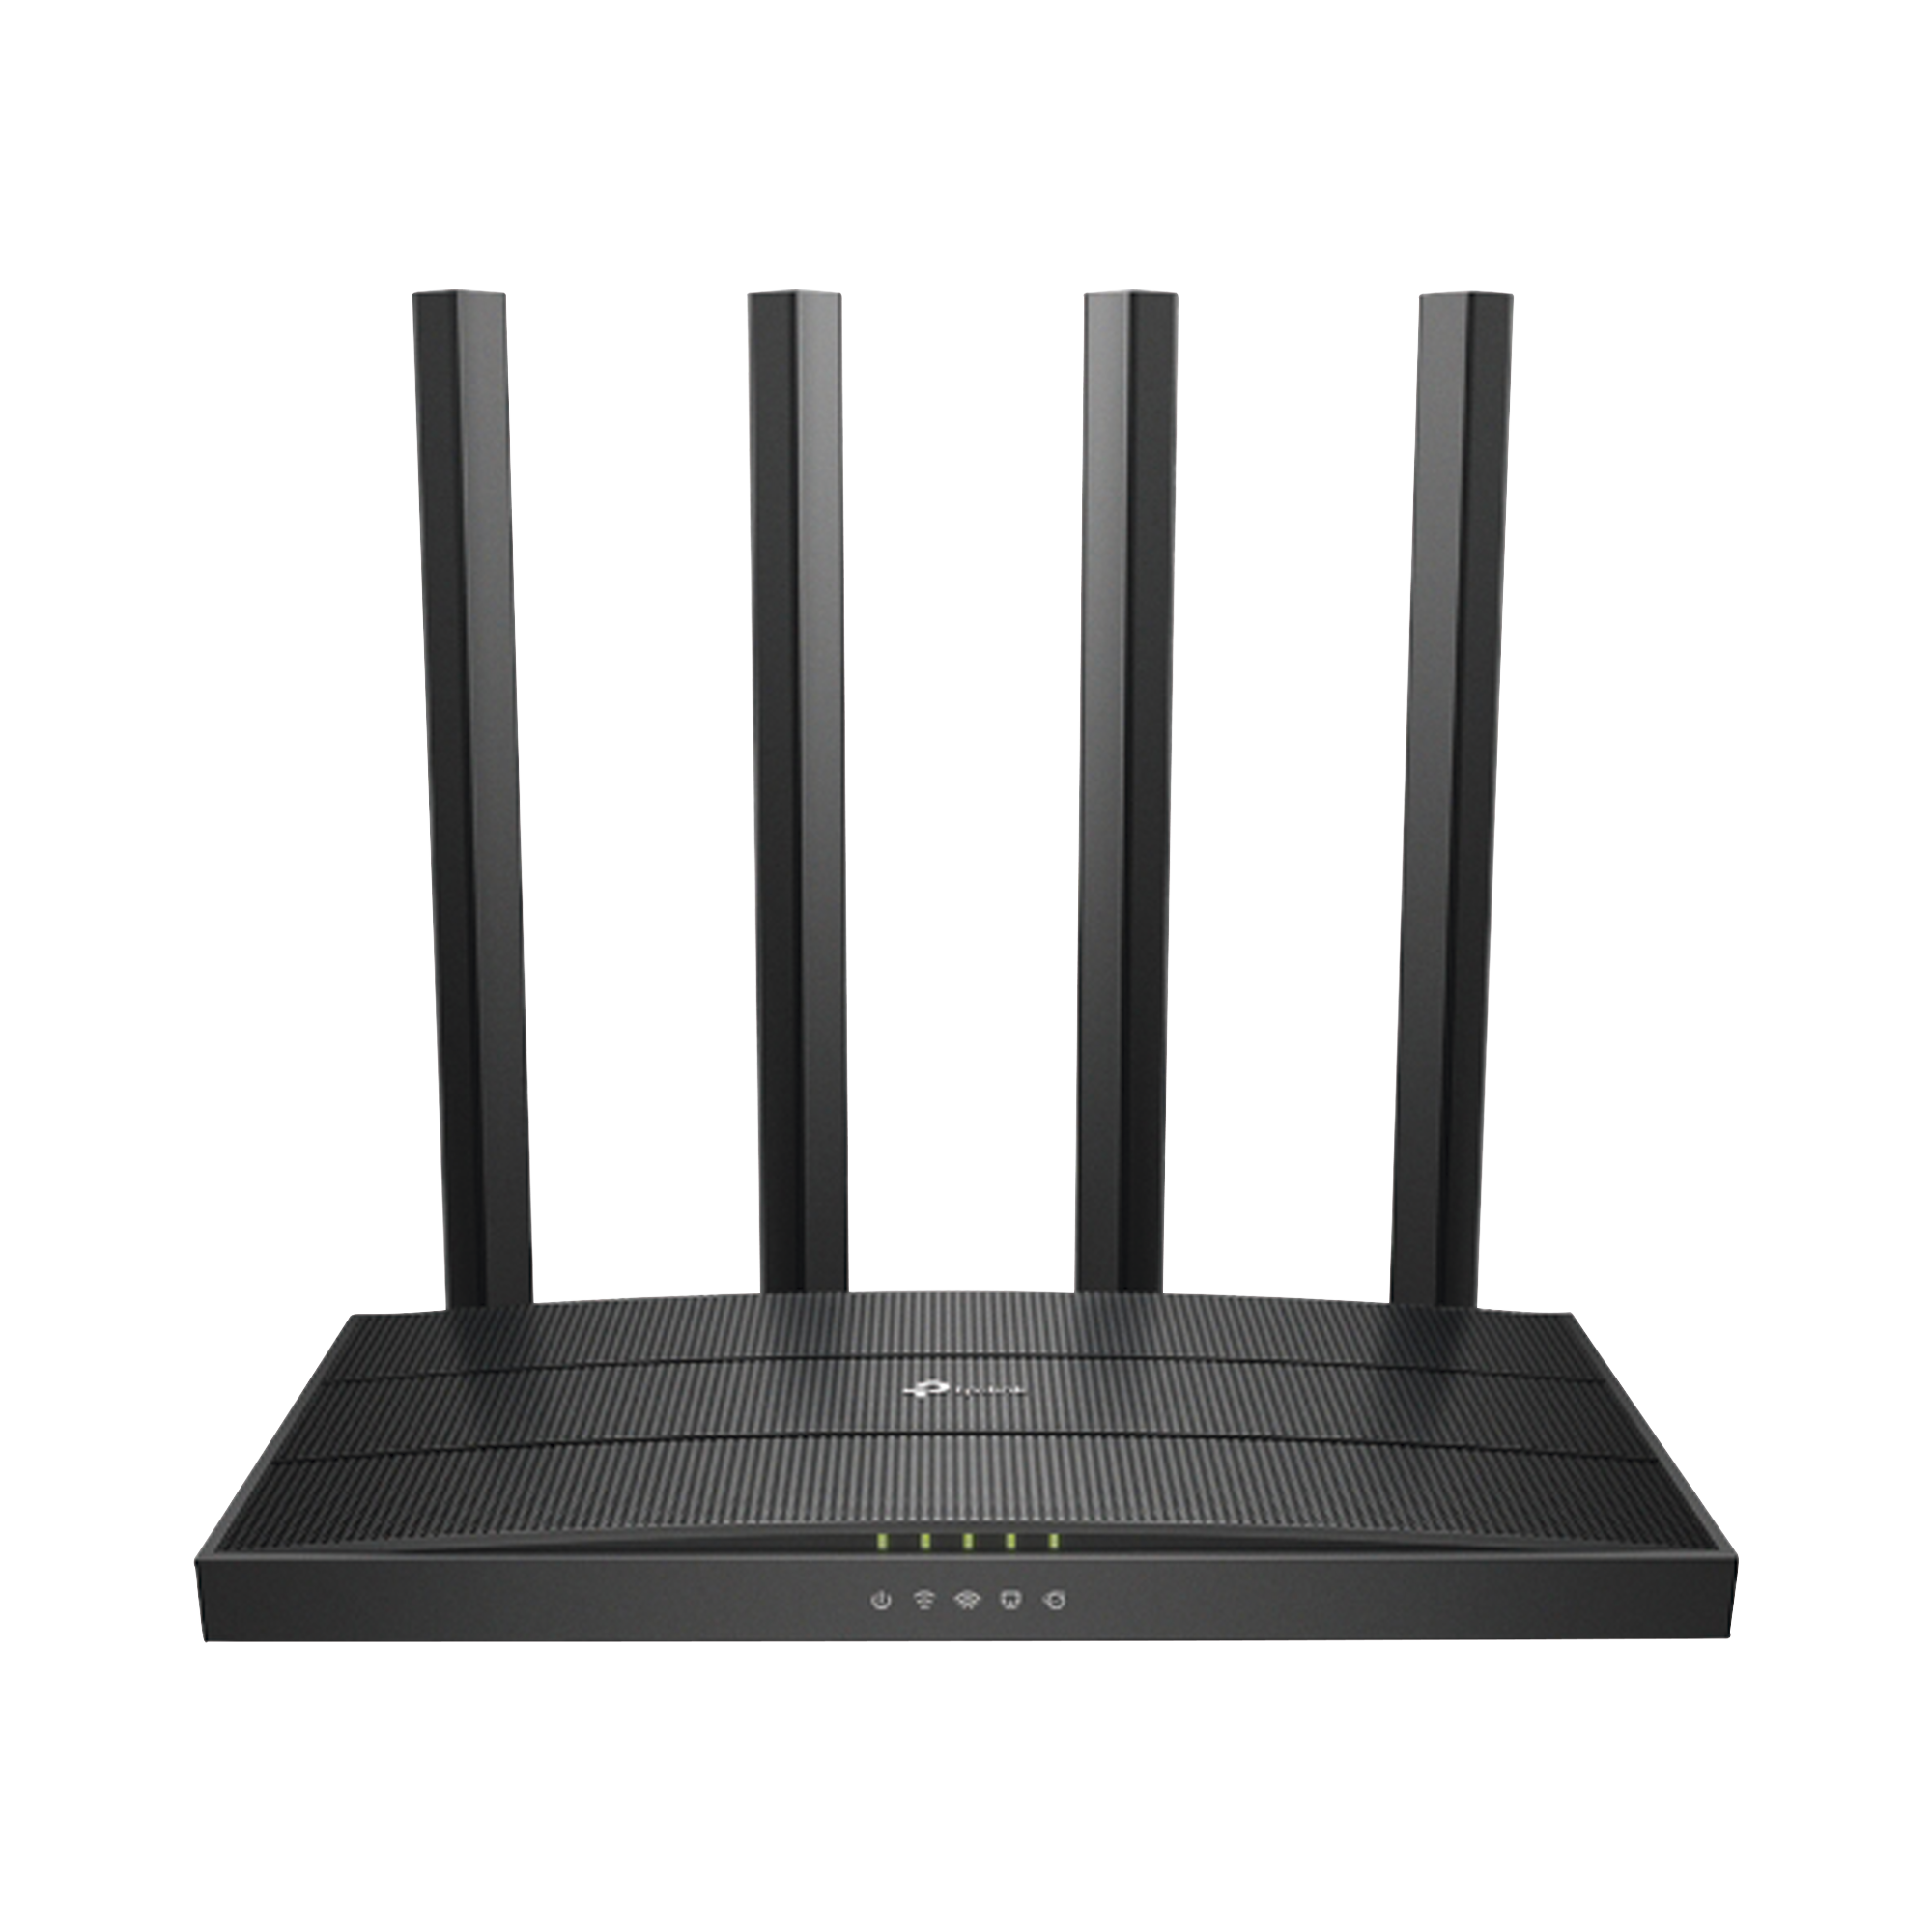 Router inalámbrico AC Wave 2 1900 doble banda 1 puerto WAN 10/100/1000 Mbps y 4 puertos LAN 10/100/1000 Mbps, MIMO 3X3, Beamforming